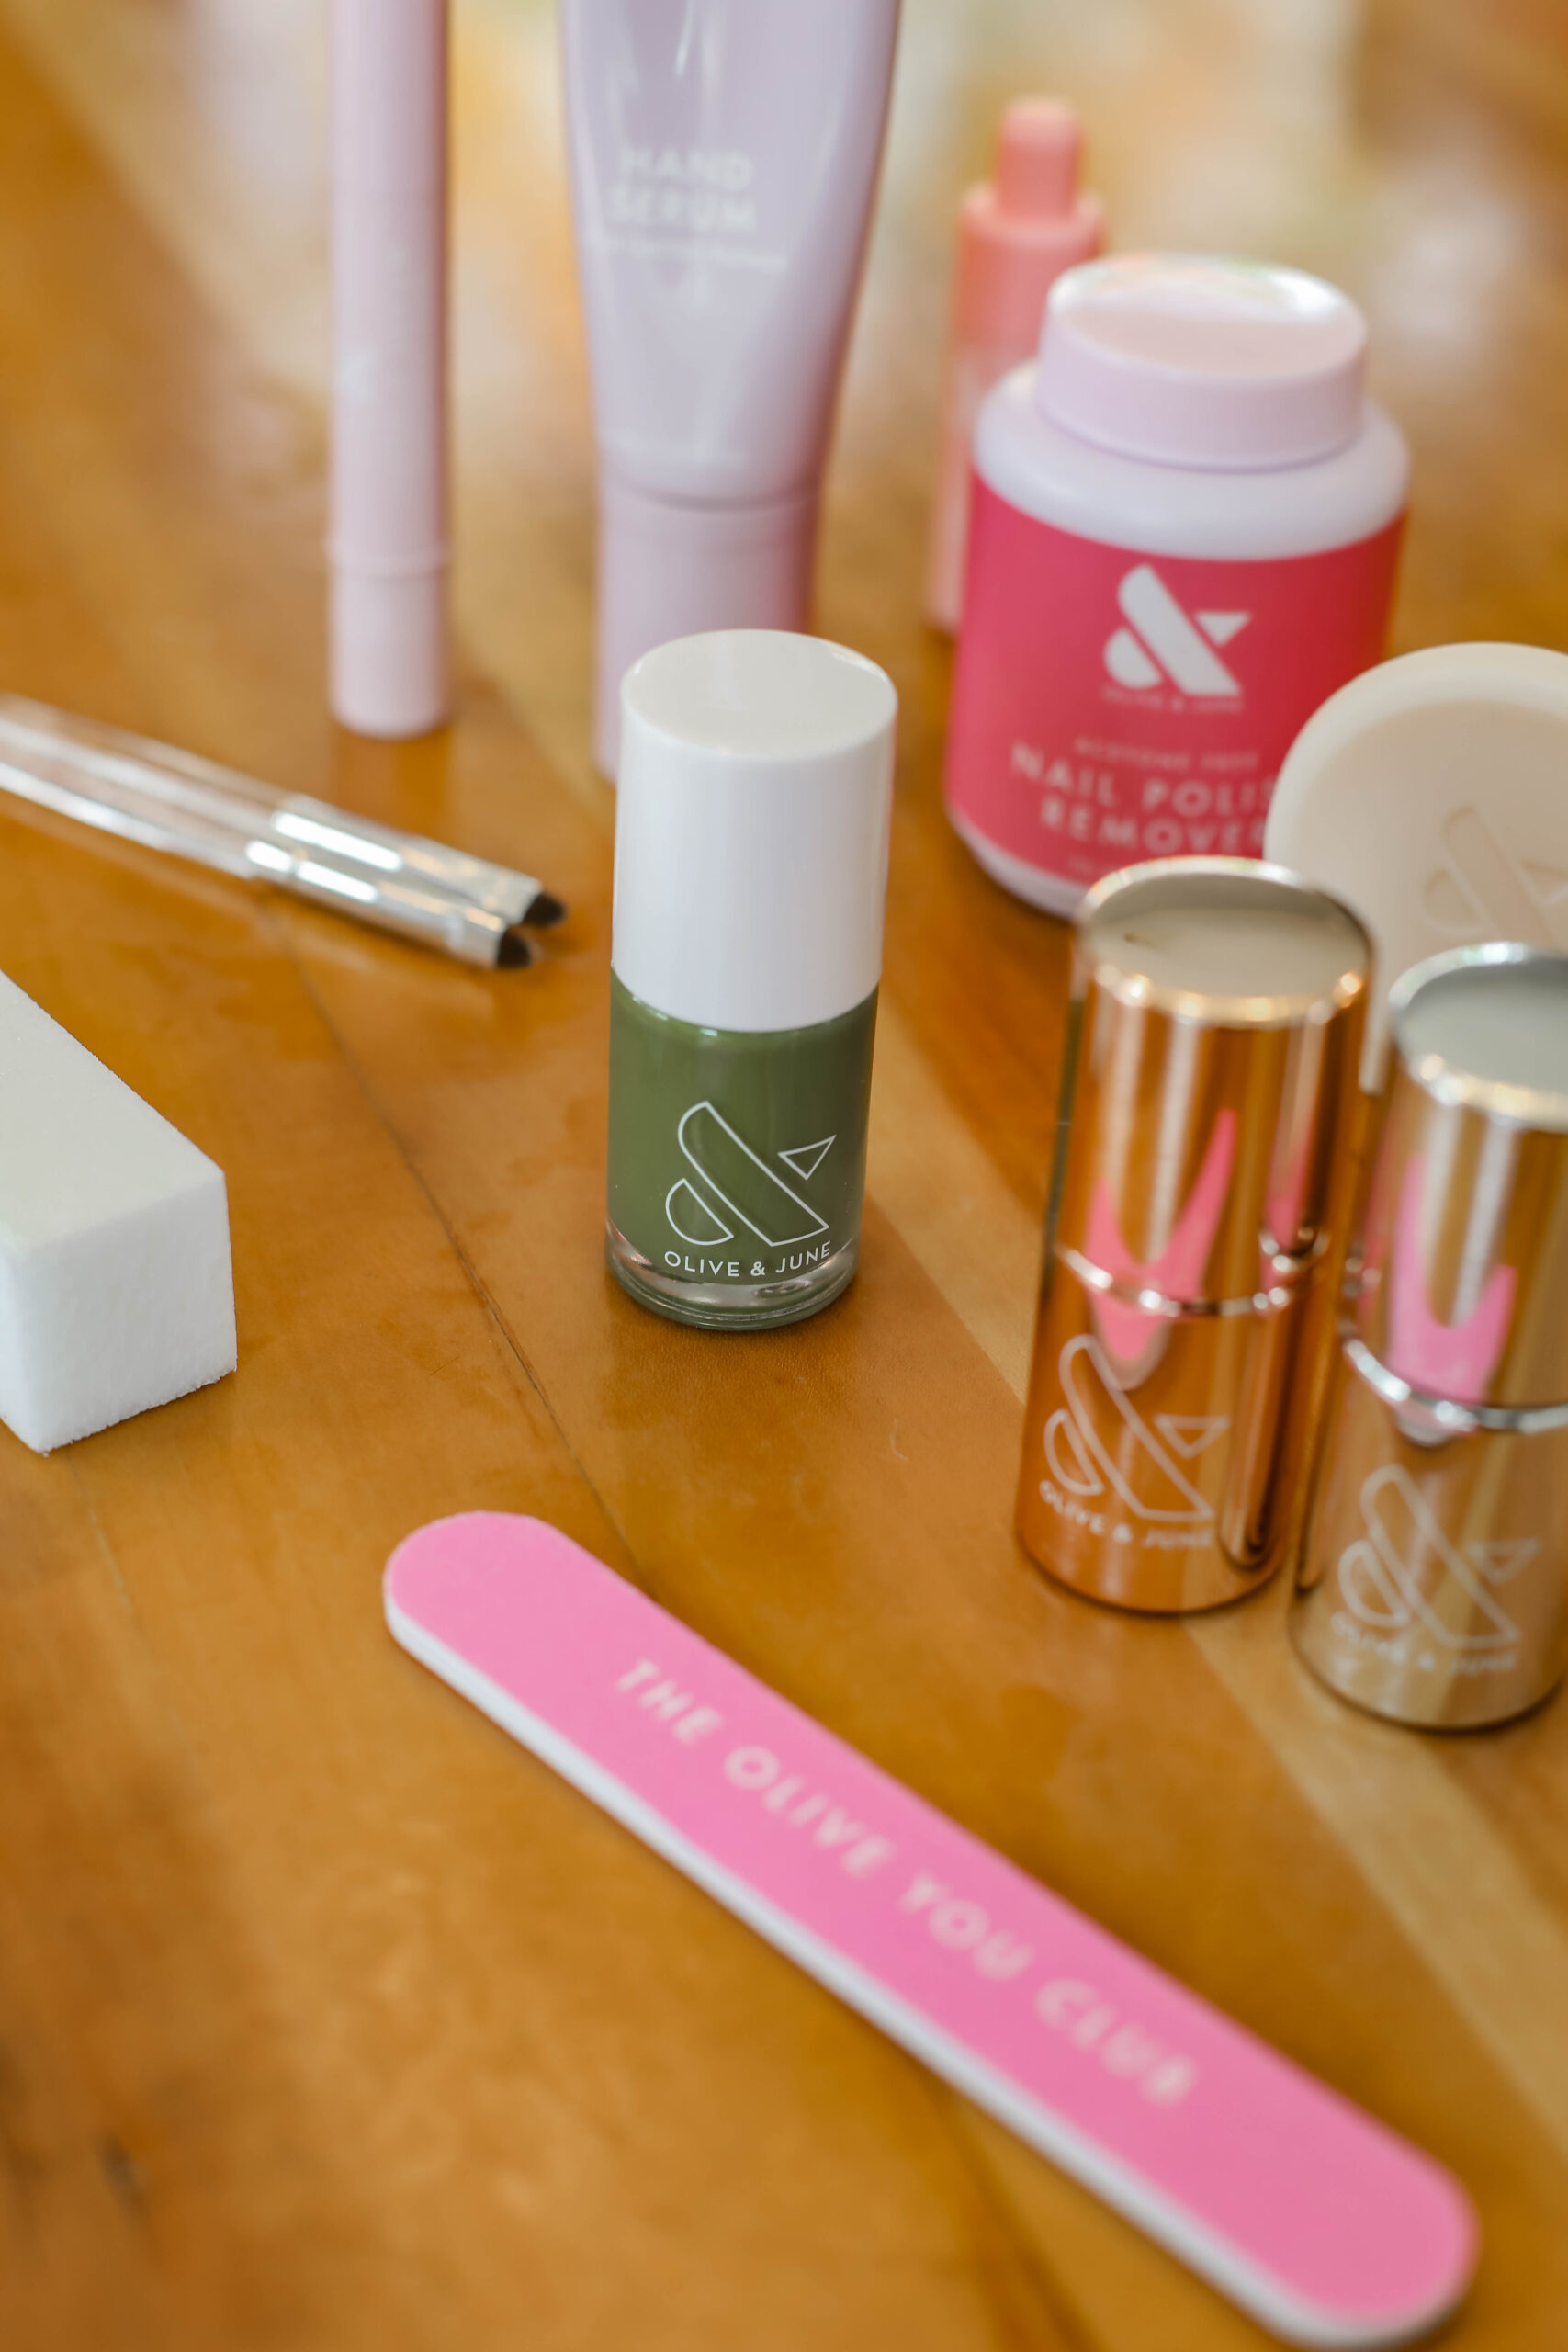 Want to start doing your nails at home? A great at-home manicure kit will change your LIFE and make that mani a million times easier!